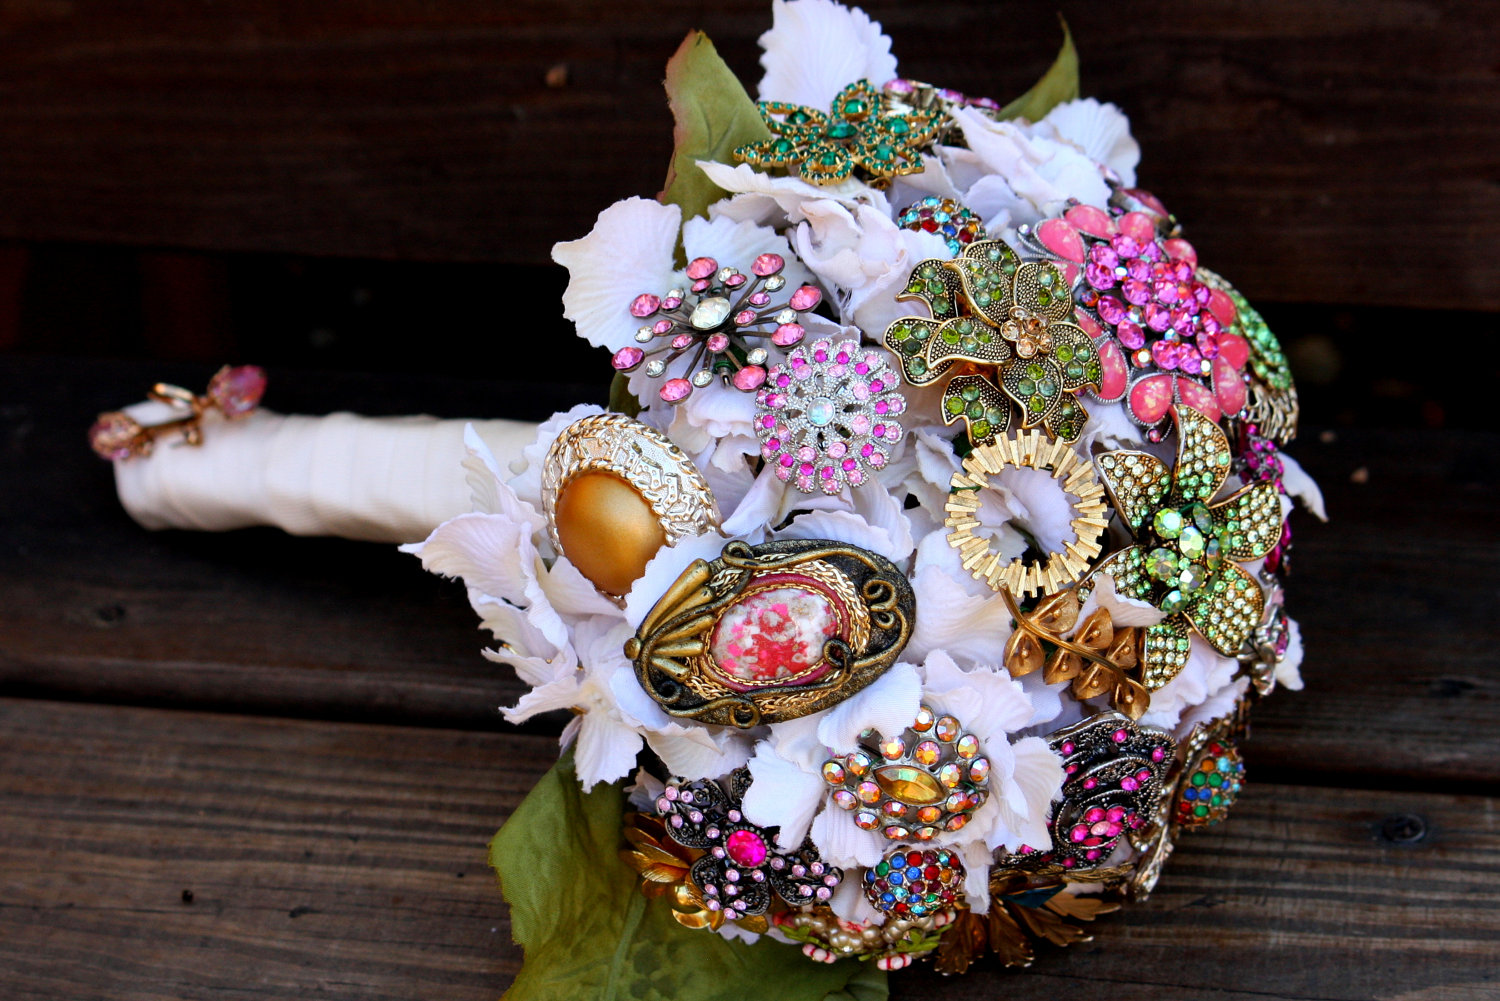 http://mubeautylady.ru/wp-content/uploads/2017/09/brooch-bridal-bouquets-vintage-wedding-ideas-1-original.jpg